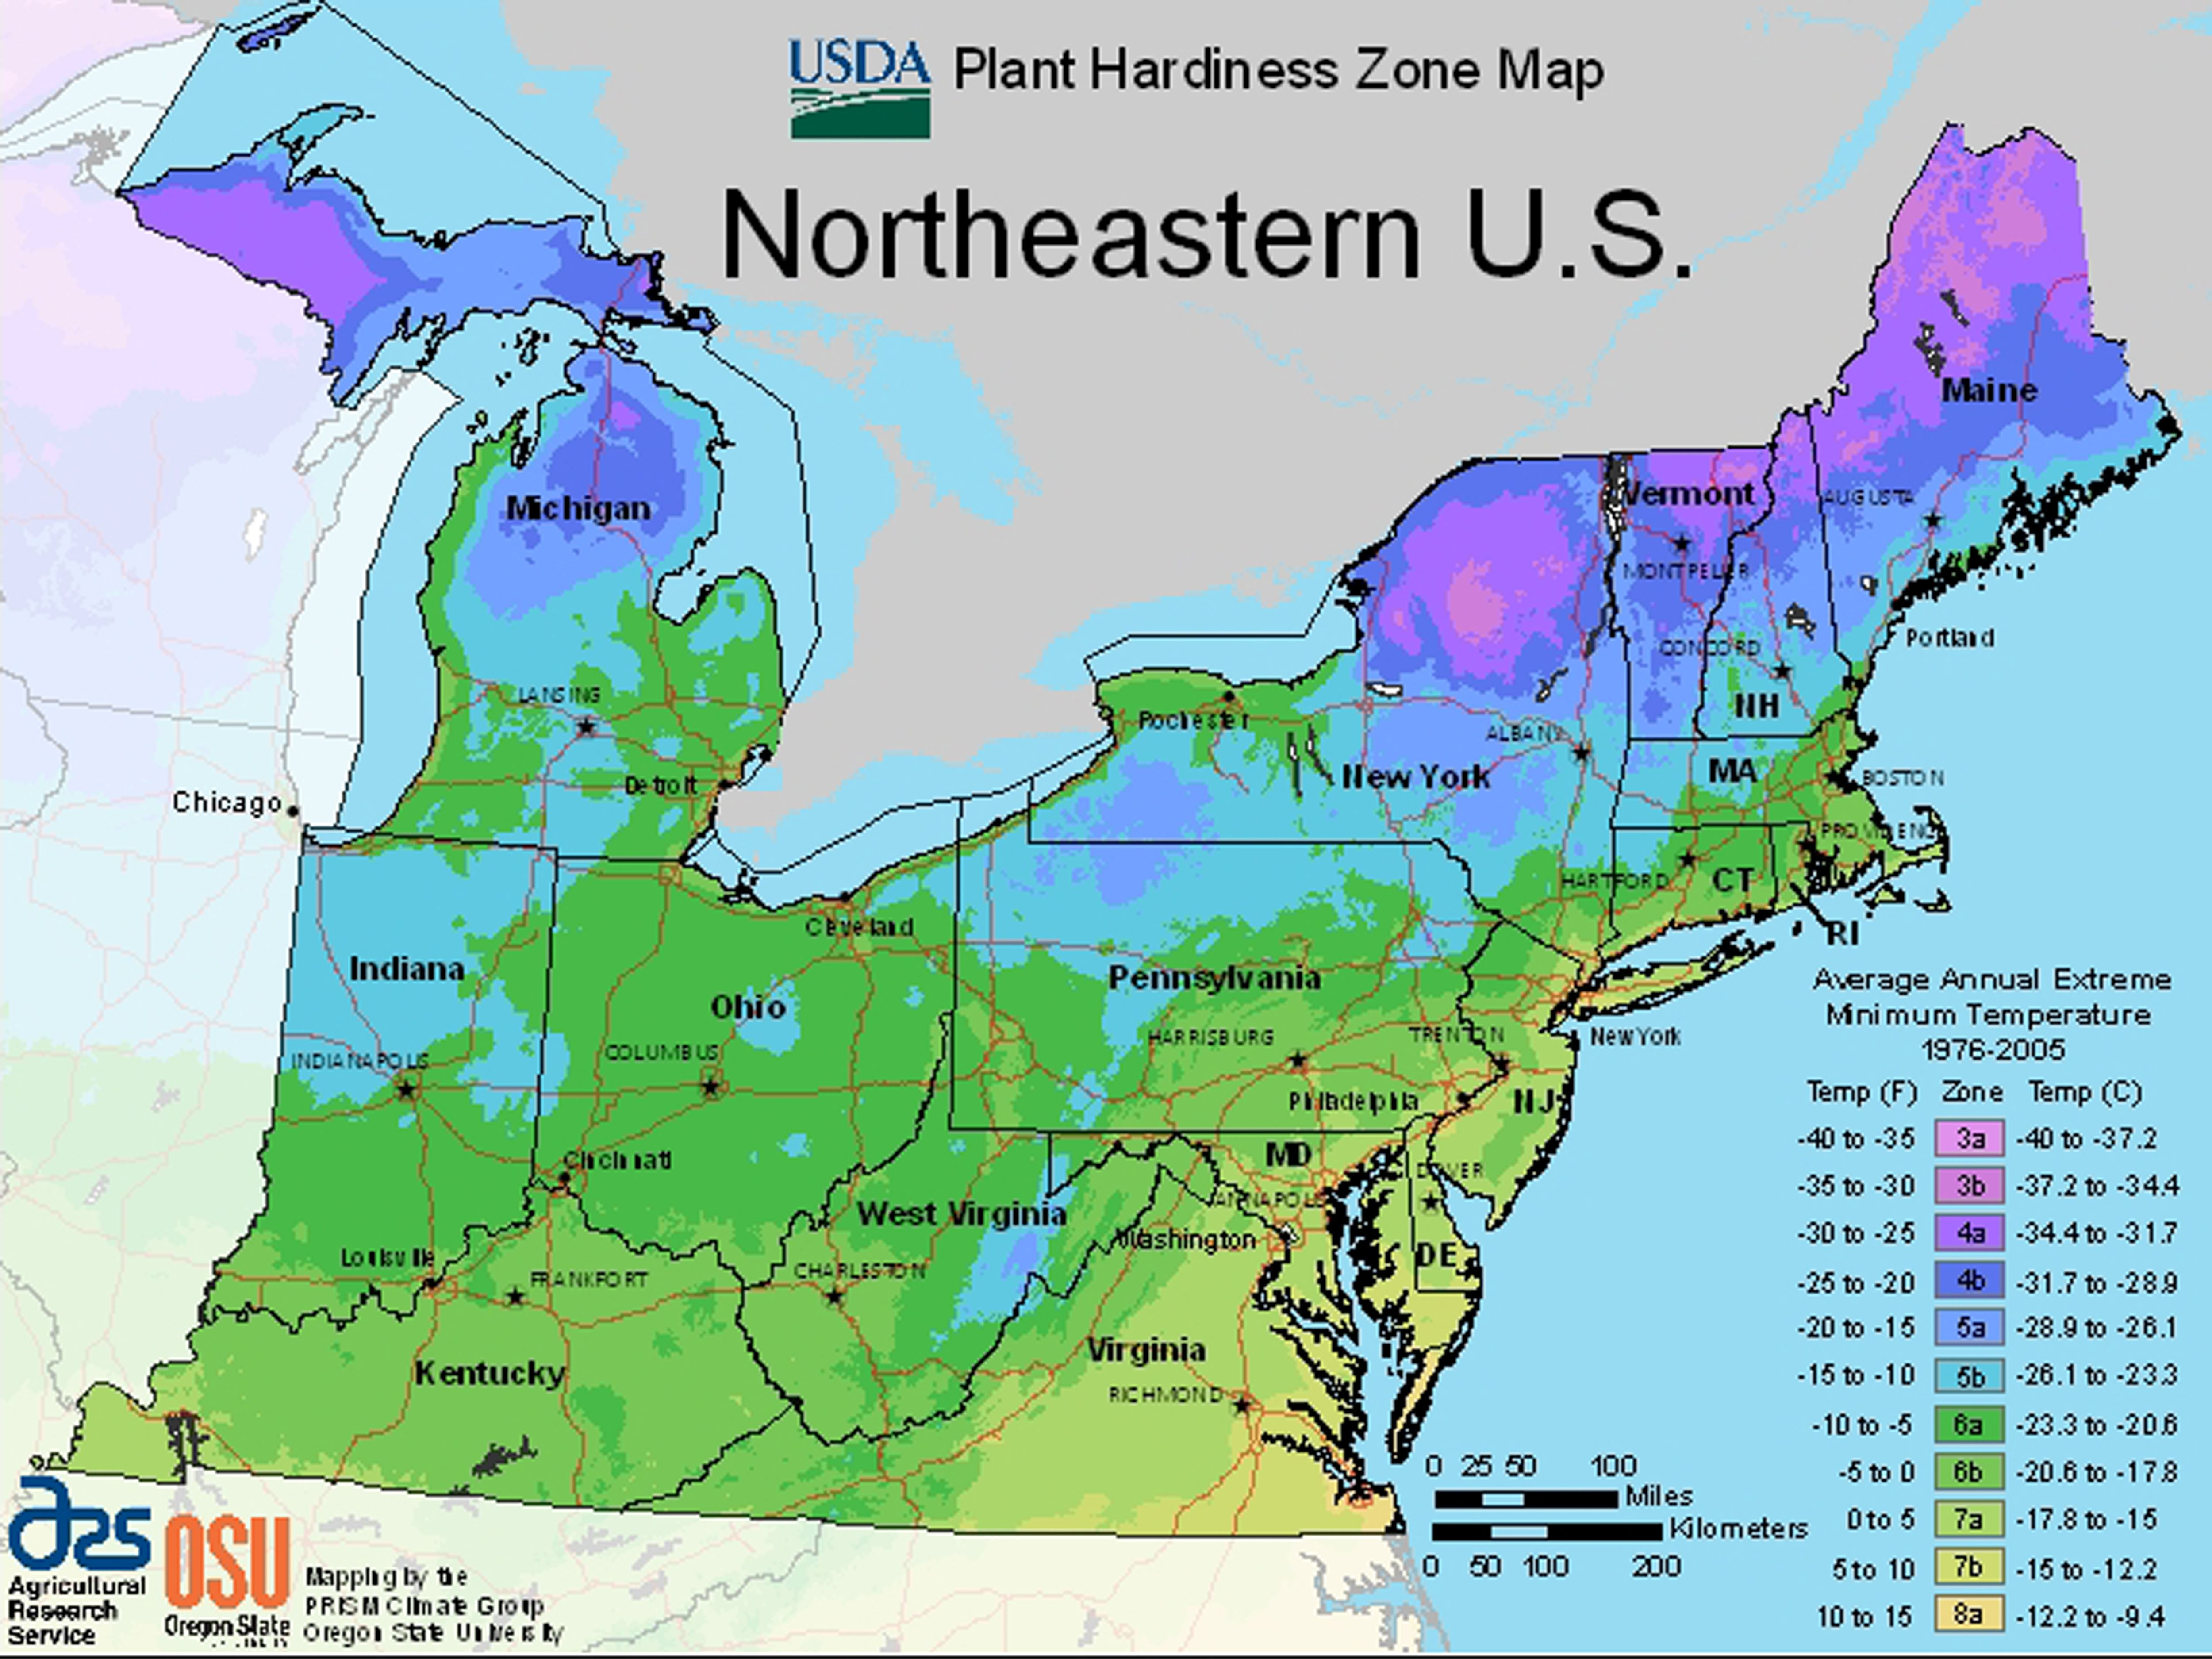 USDA Plant Hardiness Zone Maps by Region on us zip code map, west orange nj zoning map, simple zoning map, state map, nassau county town zip code map, us cable map, davis county utah zip code map, primal map, delaware agricultural map, yamhill county oregon zoning map, city map, evanston il zoning map, los angeles california fire map, outer cape map, nave map, illea map, mt. lebanon map, weather lansing mi map, area map, sask hunting map,